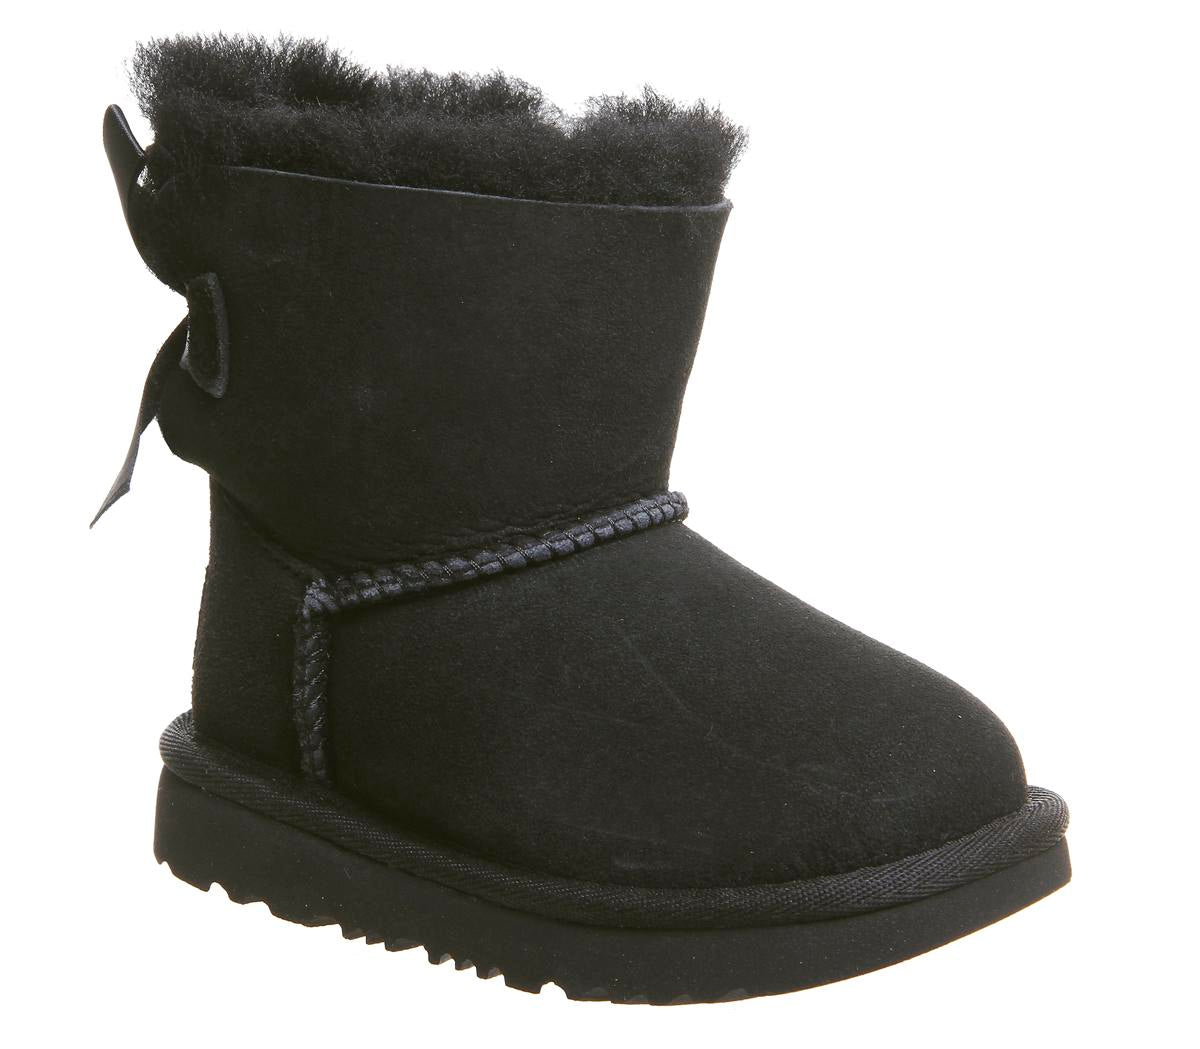 Kids UGG Bailey Bow Infant Boots Black